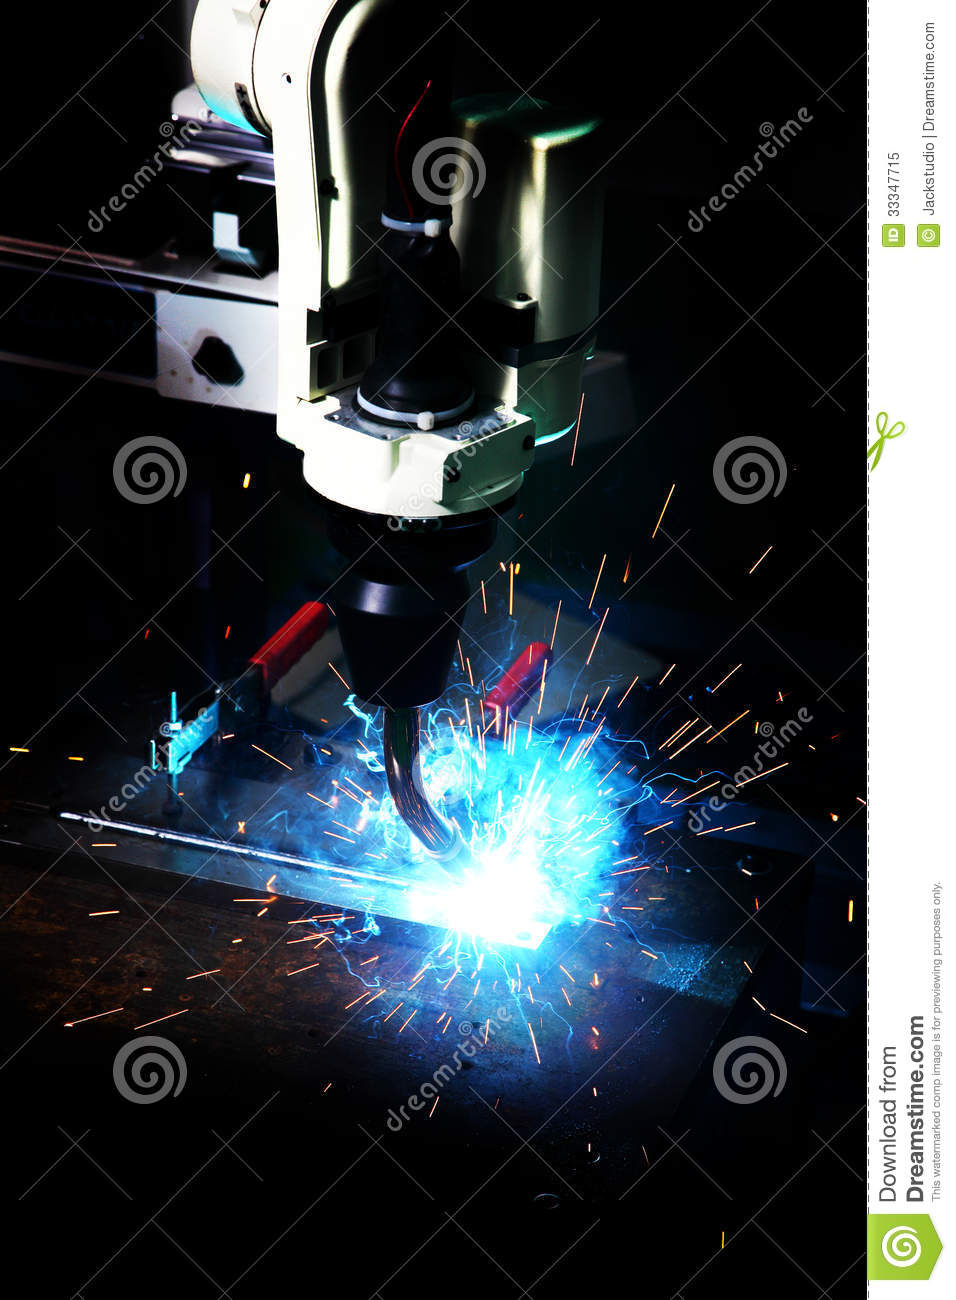 Laser Cutting Of Metal Sheet With Sparks Stock Image